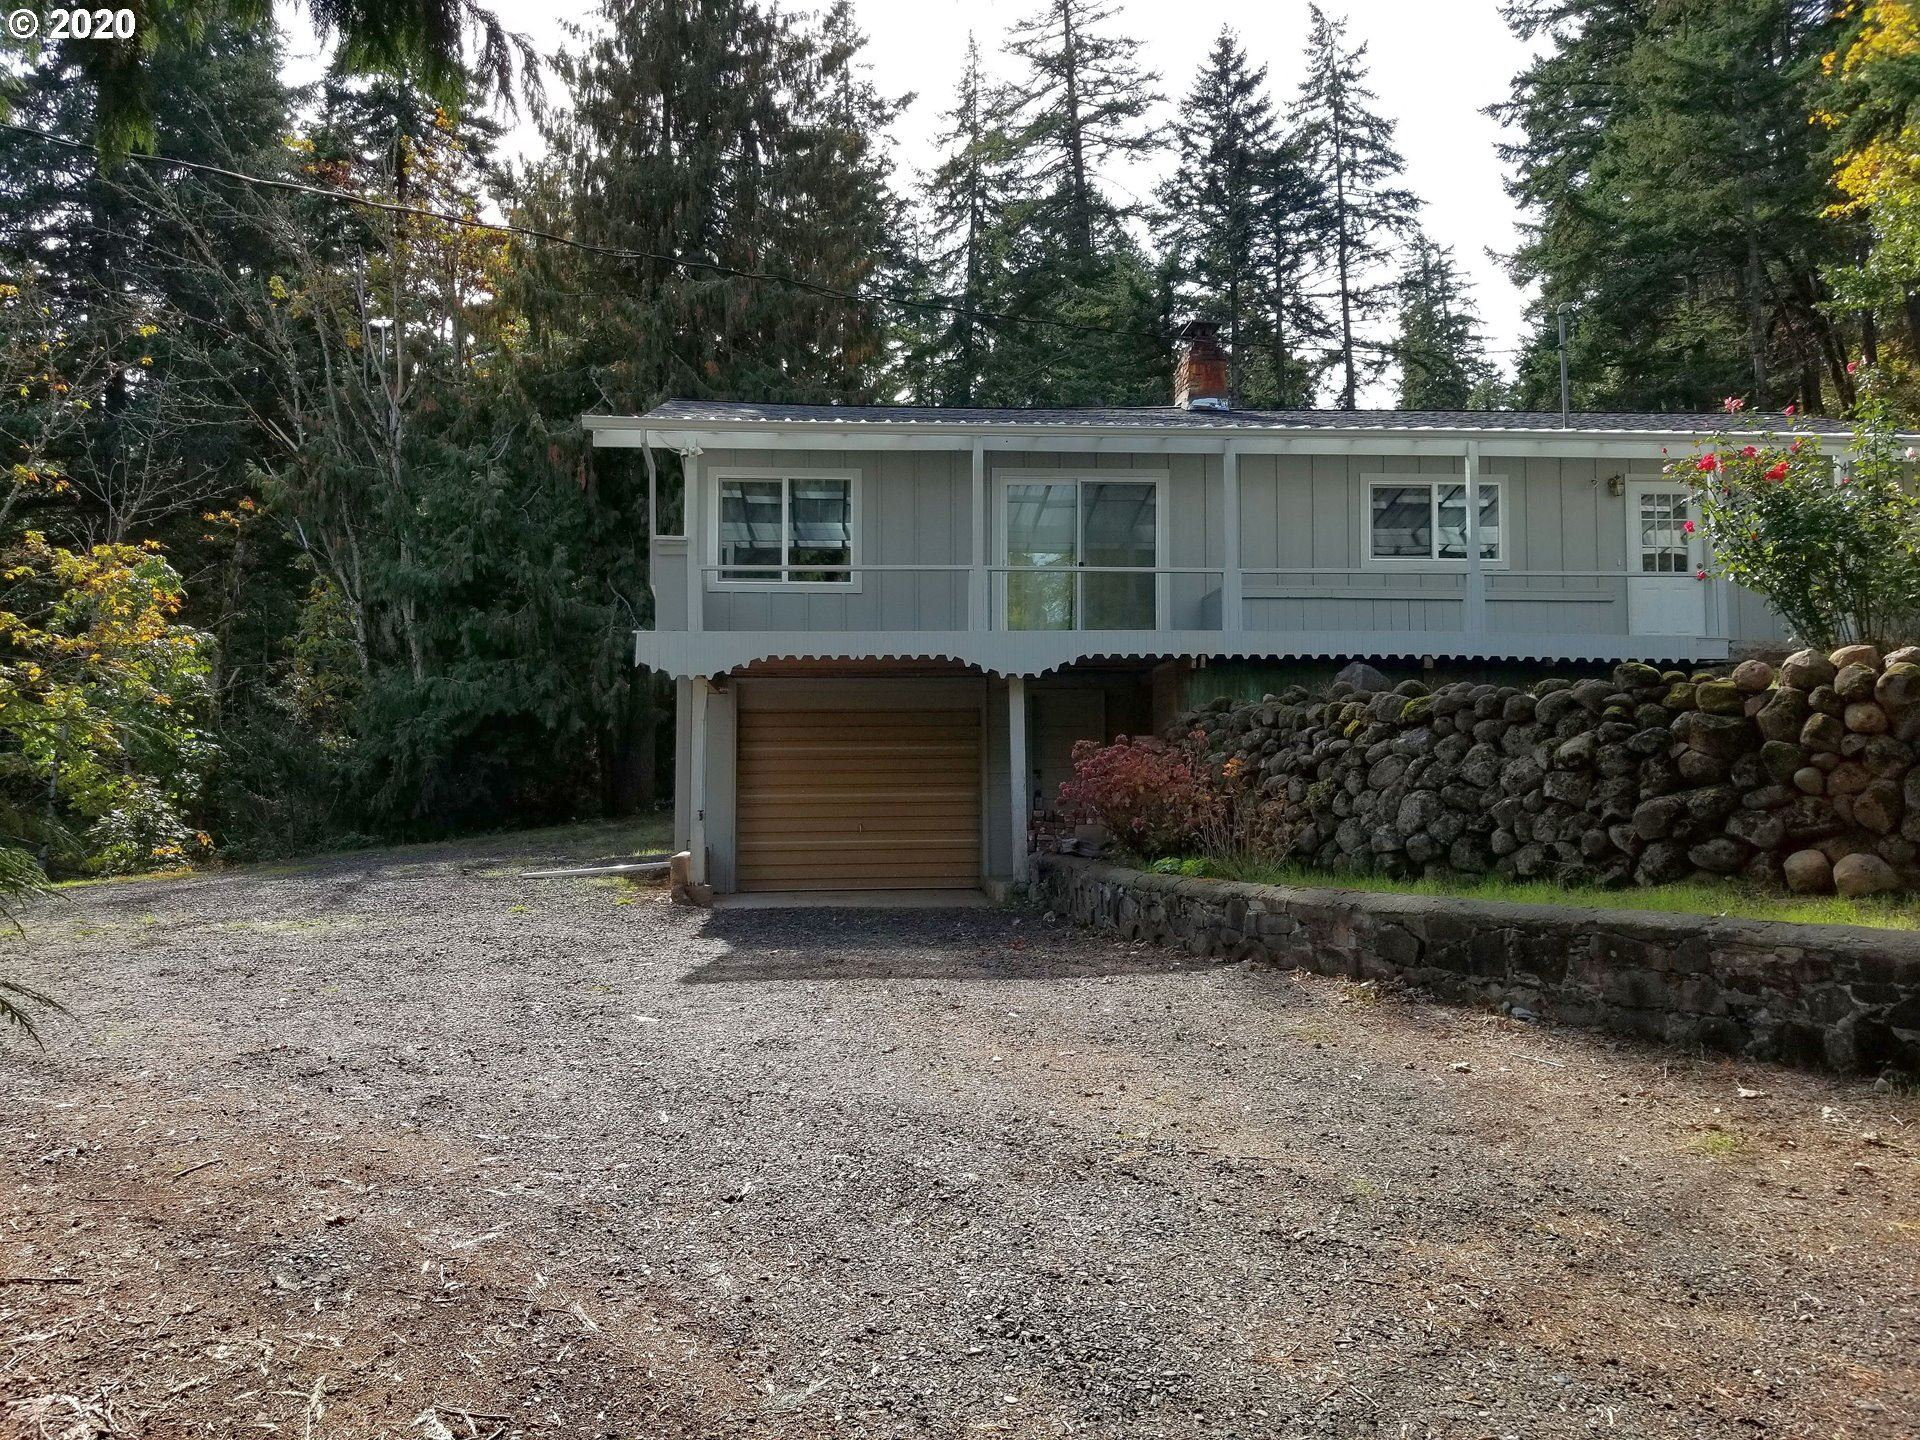 Photo of 4595 RIORDAN HILL DR, Hood River, OR 97031 (MLS # 20662333)